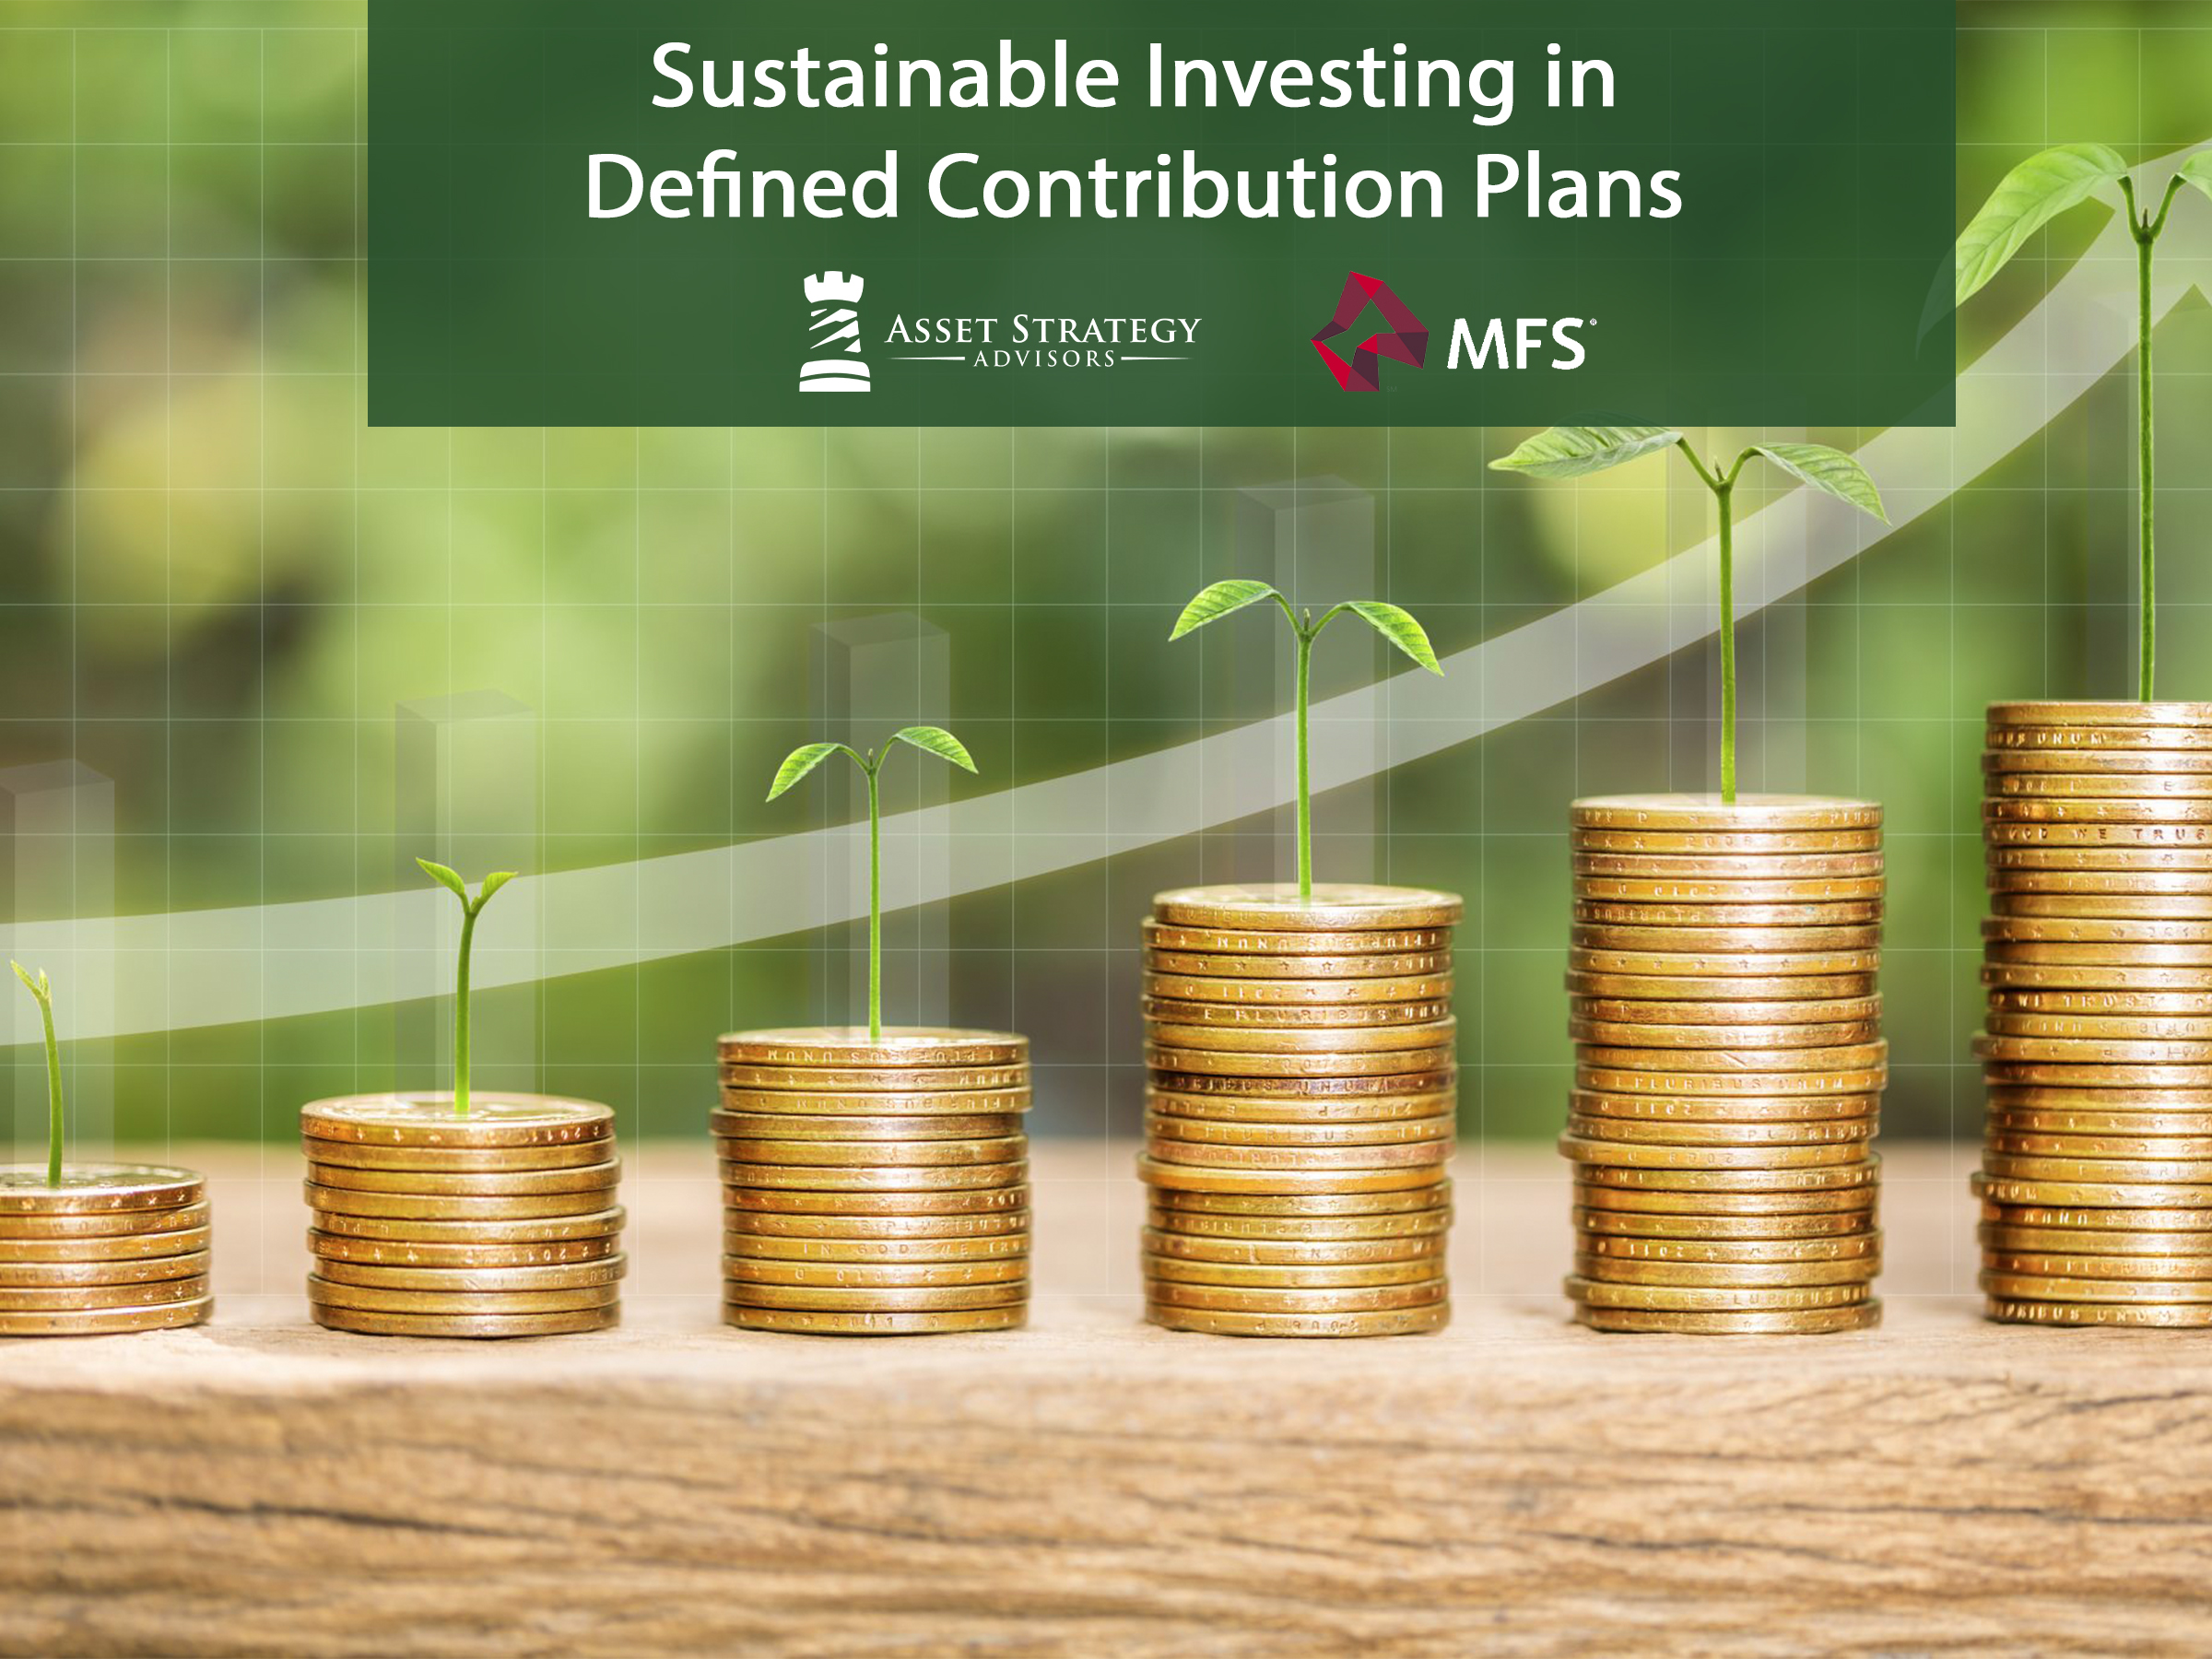 Sustainable Investing in Define Contribution_MFS.jpg